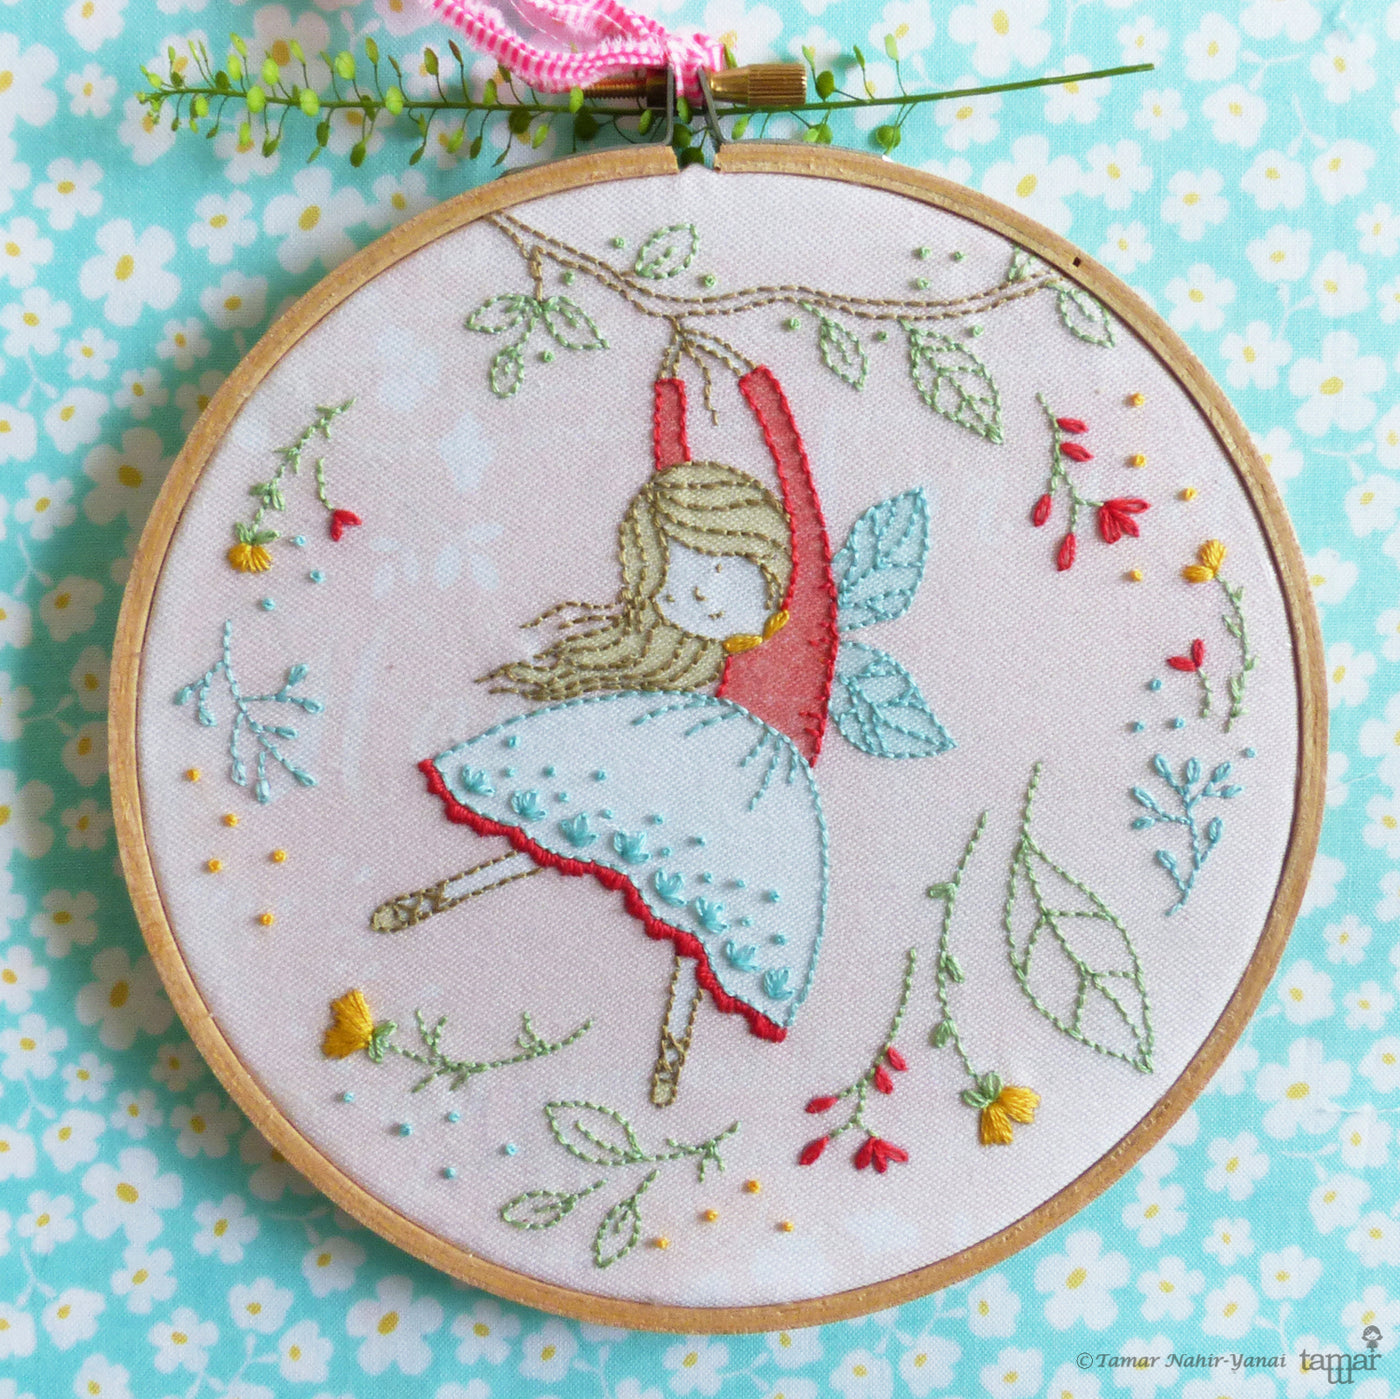 "Flying Fairy 6"" Embroidery Kit"